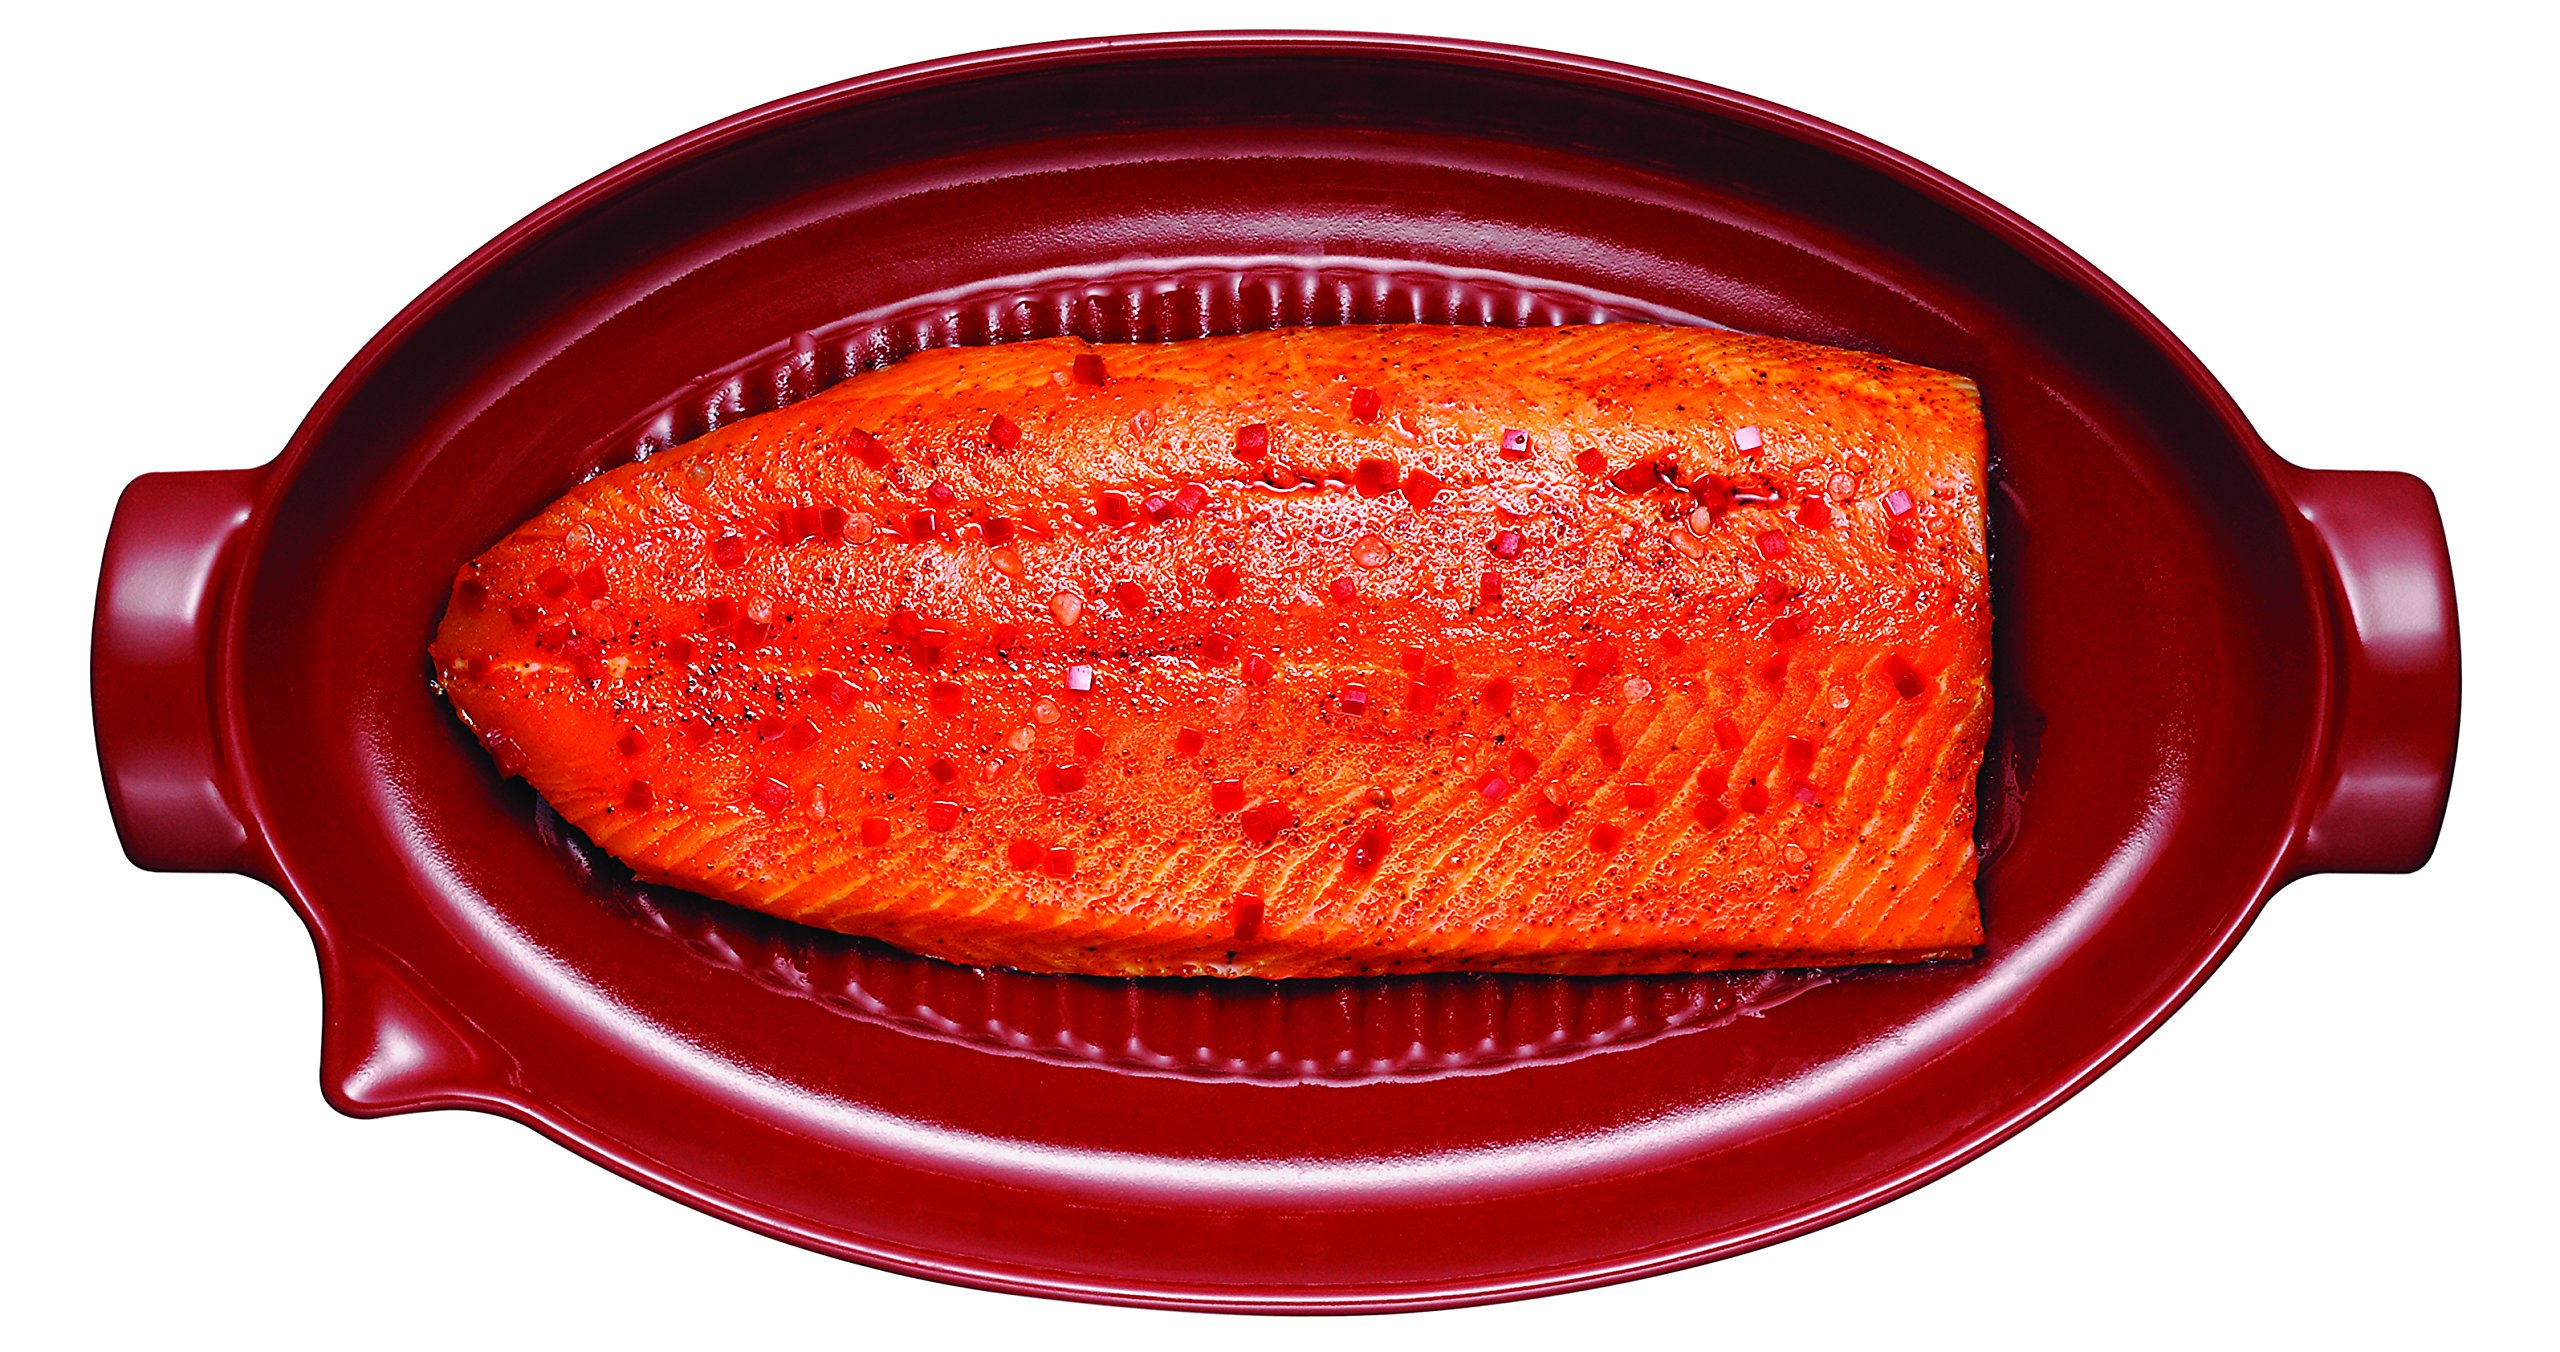 Emile Henry Made In France Flame BBQ Fish Baking Dish, 19.7 x 11'', Charcoal by Emile Henry (Image #4)